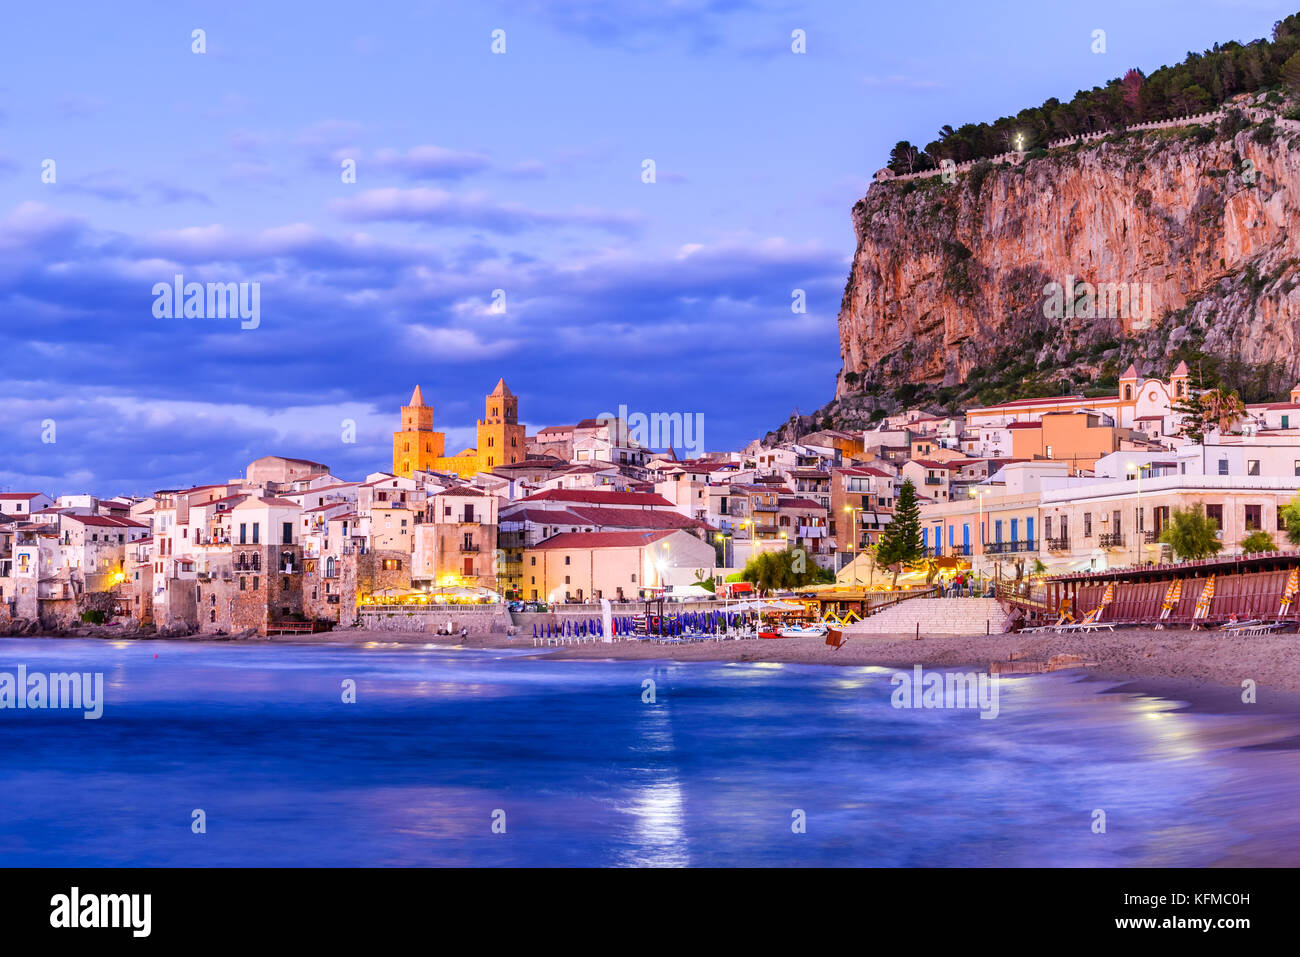 Cefalu, Sicily. Ligurian Sea and medieval sicilian city Cefalu. Province of Palermo, Italy. Stock Photo